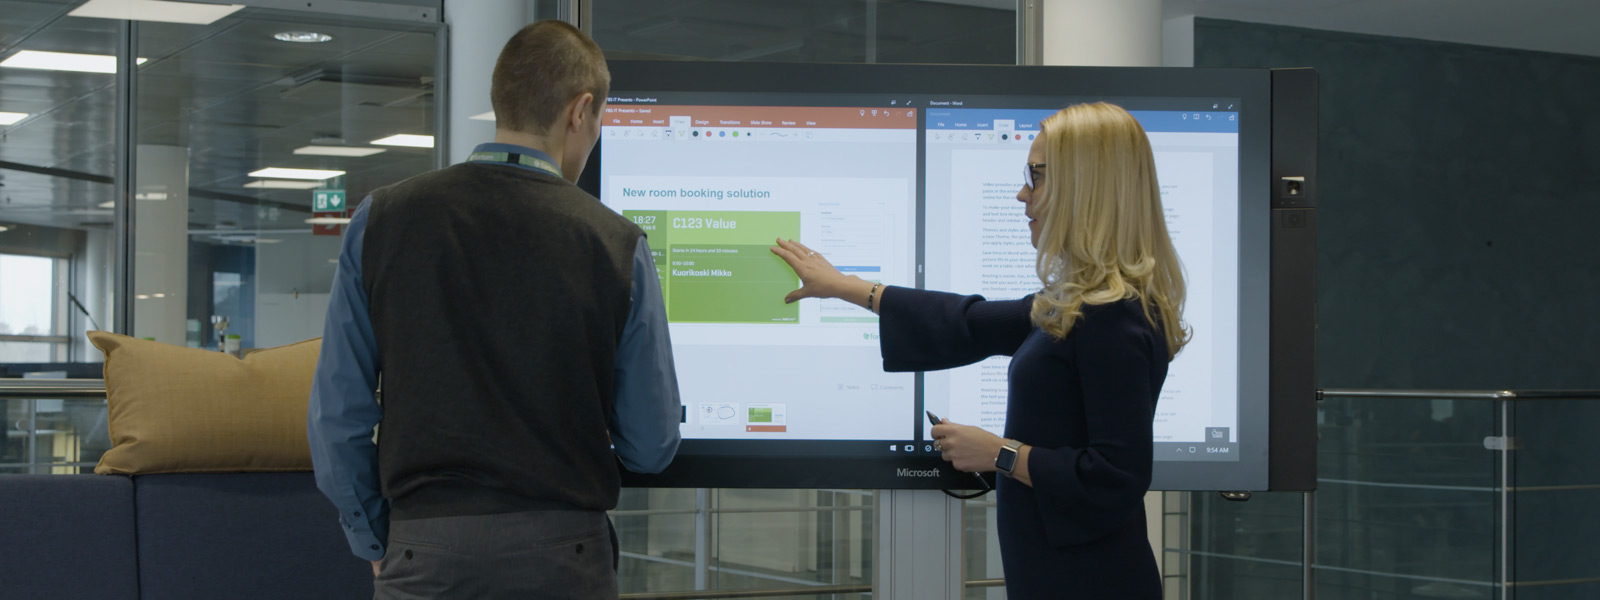 A woman and man stand in front of a Hub with PowerPoint and Word open on the screen